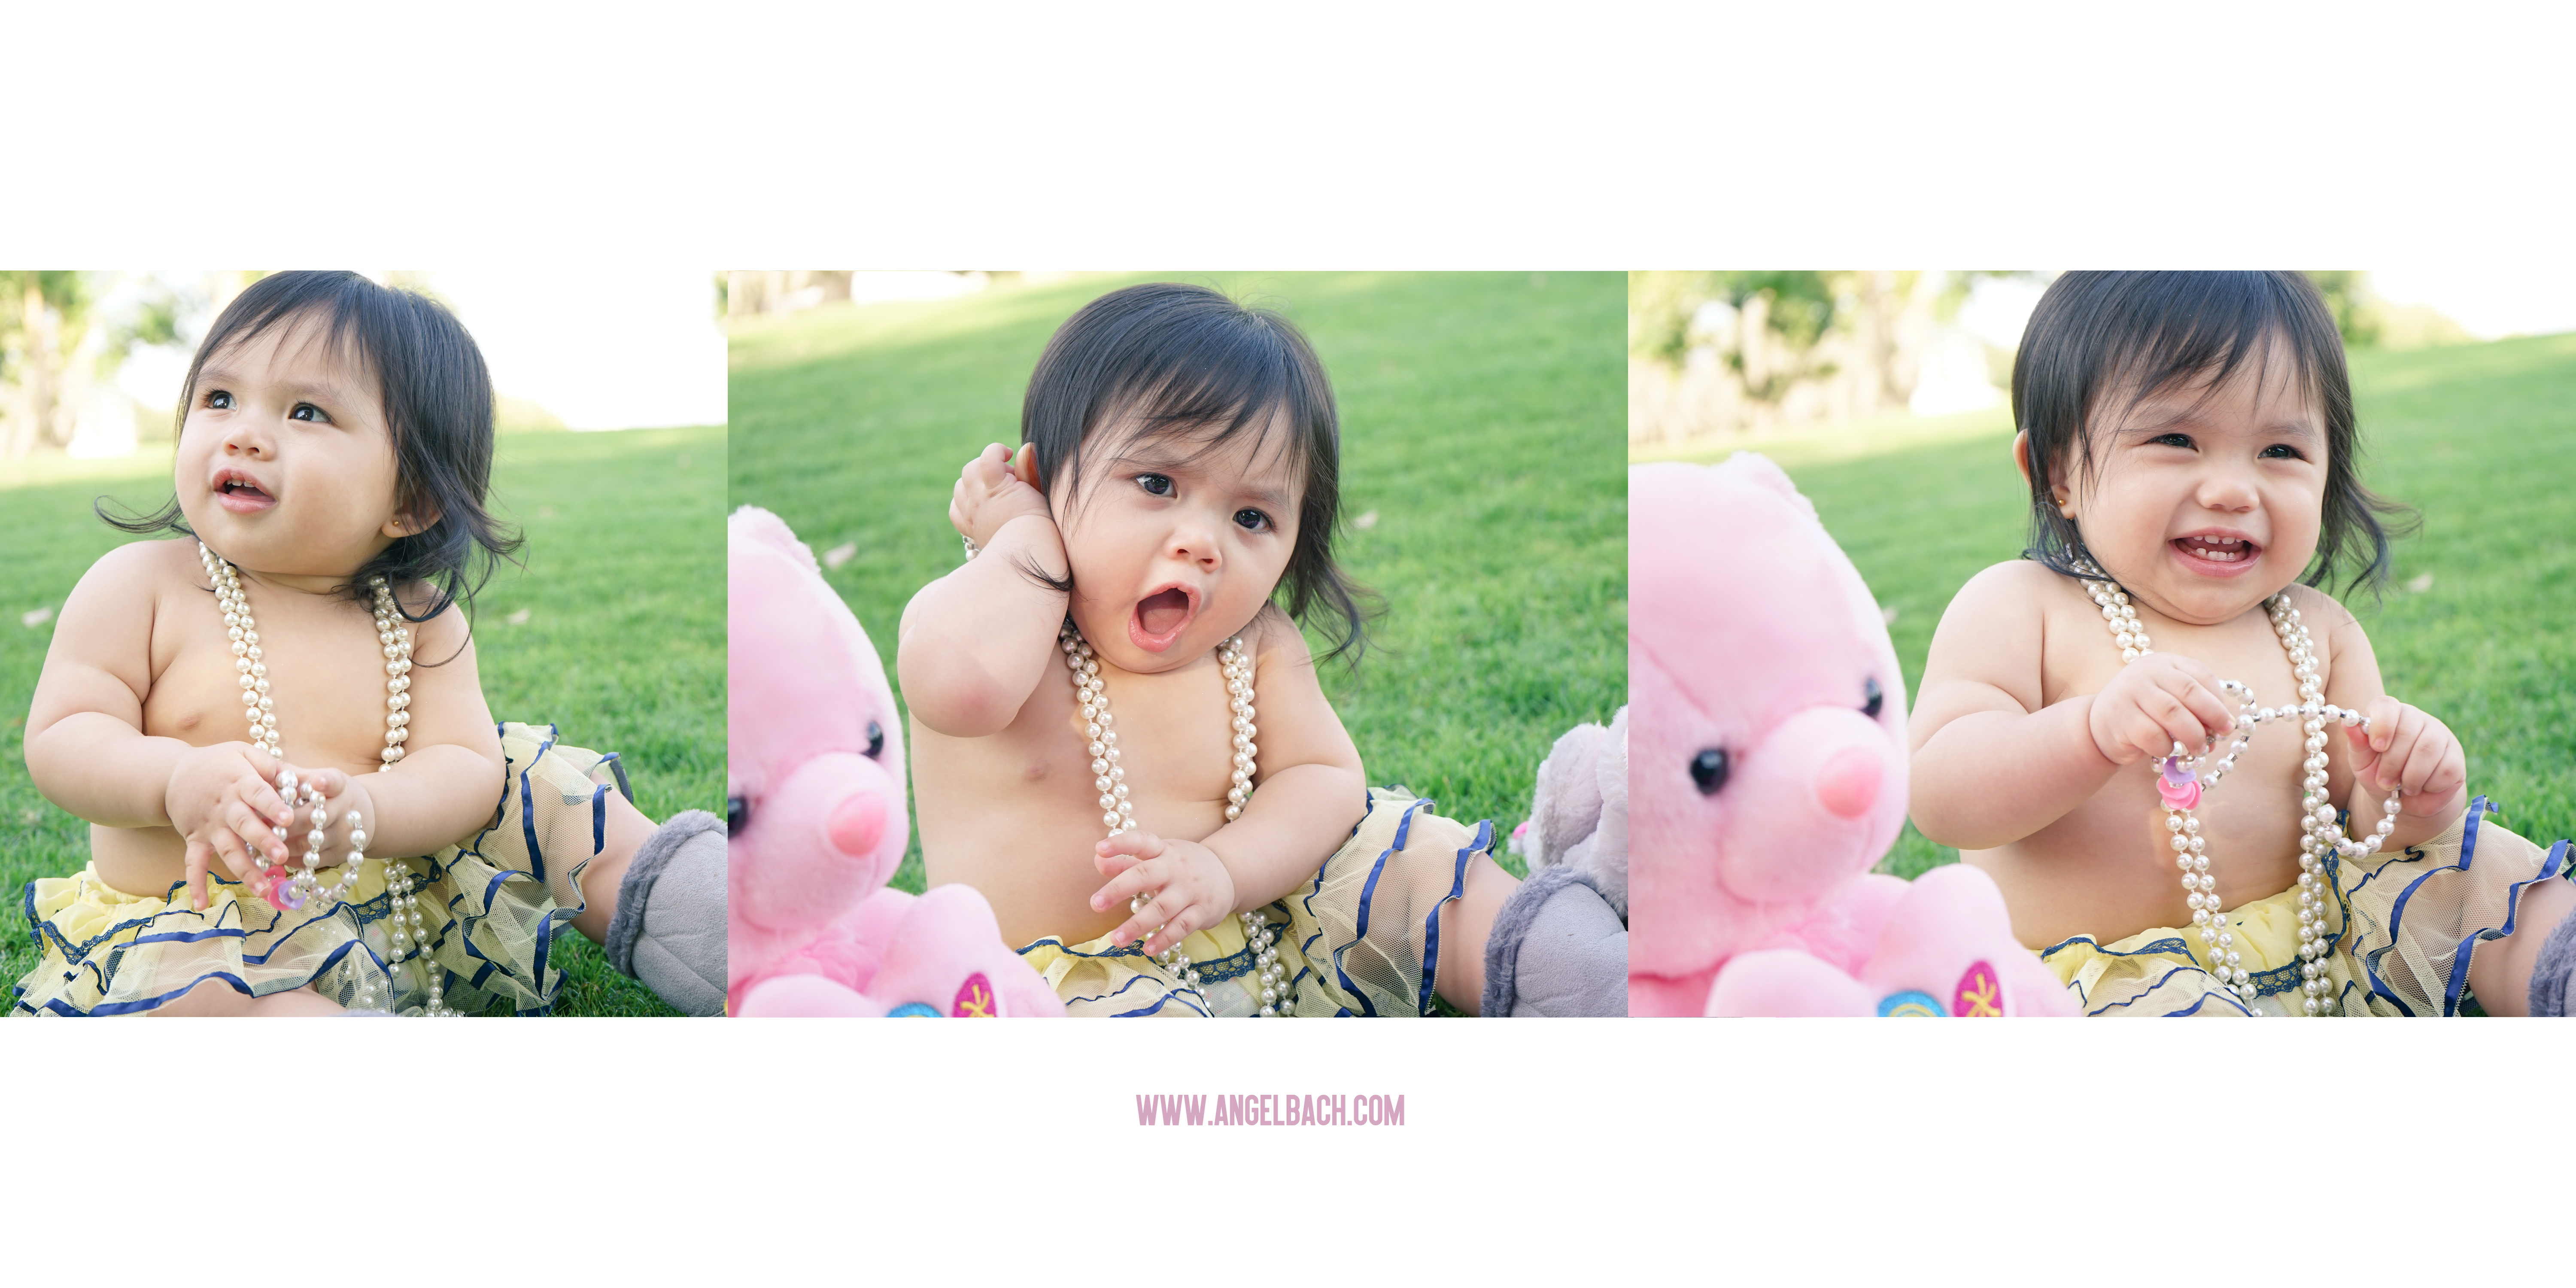 Mixed Baby, Half Jordanian Baby, Birthday phot at 1, Baby Portraits, Baby girl at 1, Cute baby, lovely baby, innocence baby photo